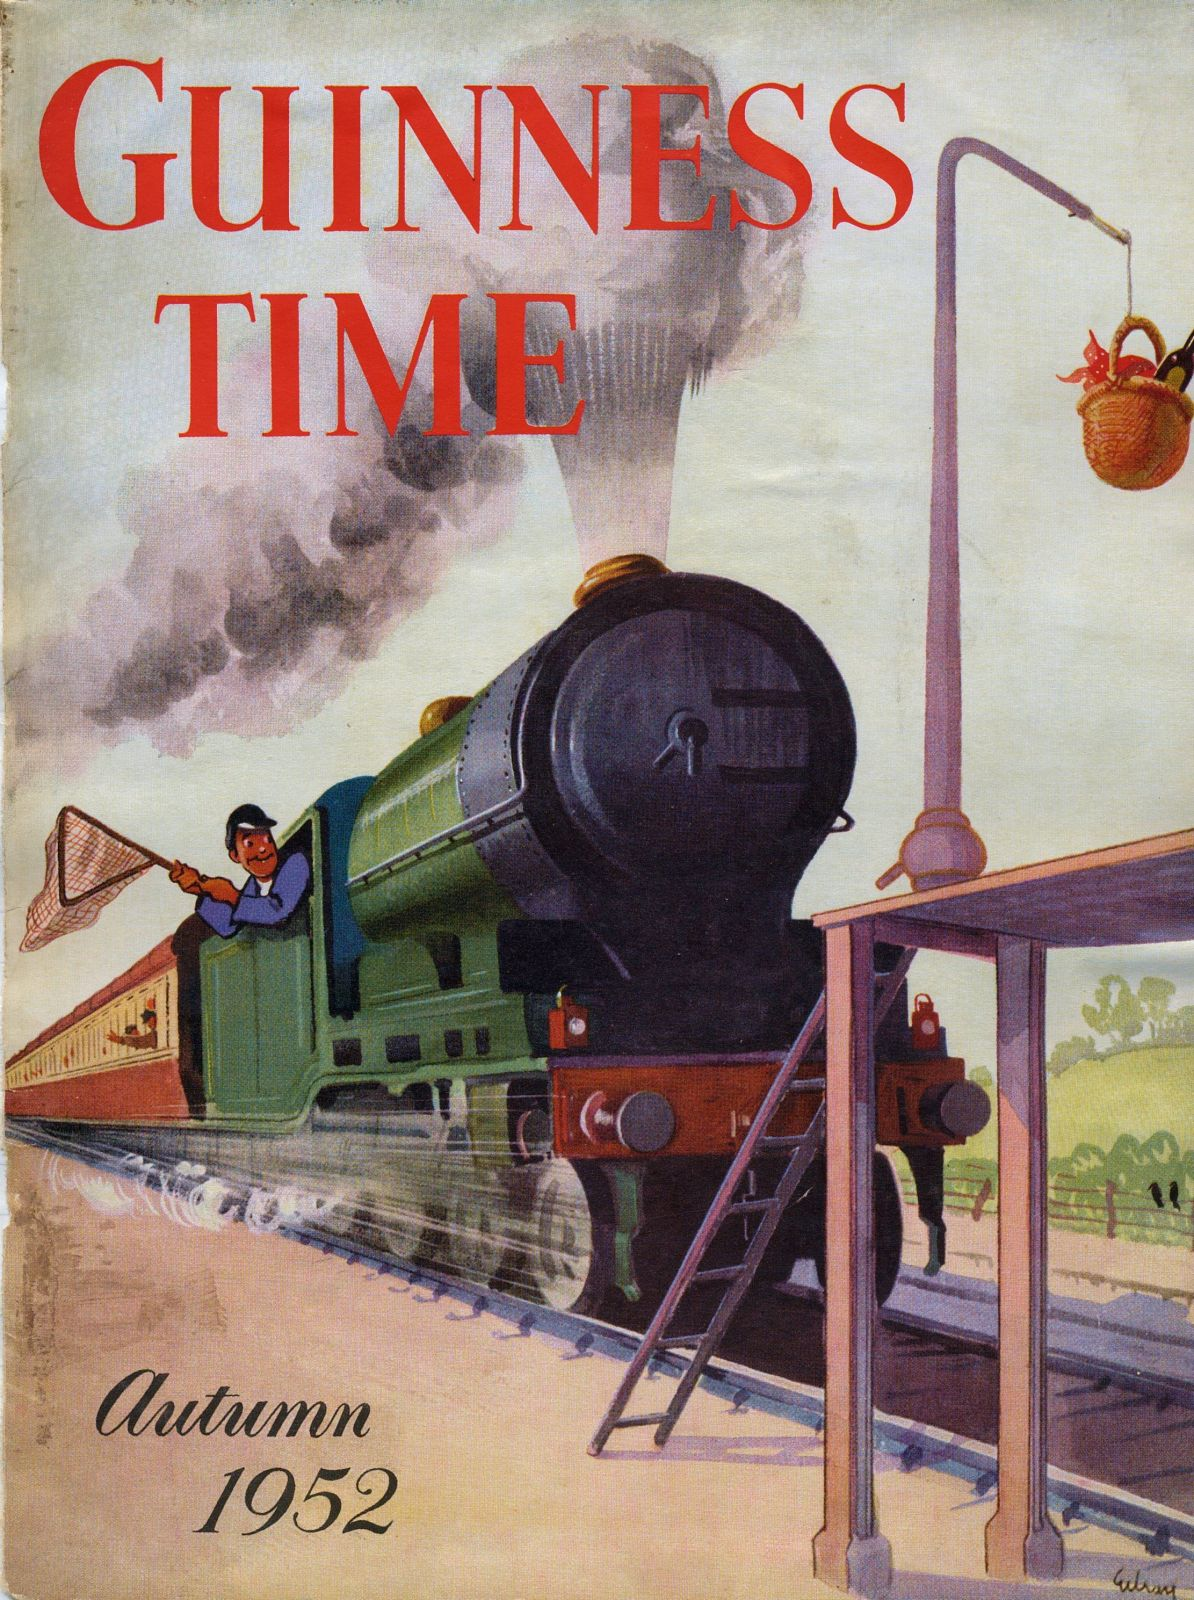 Guinness Time Autumn 1952